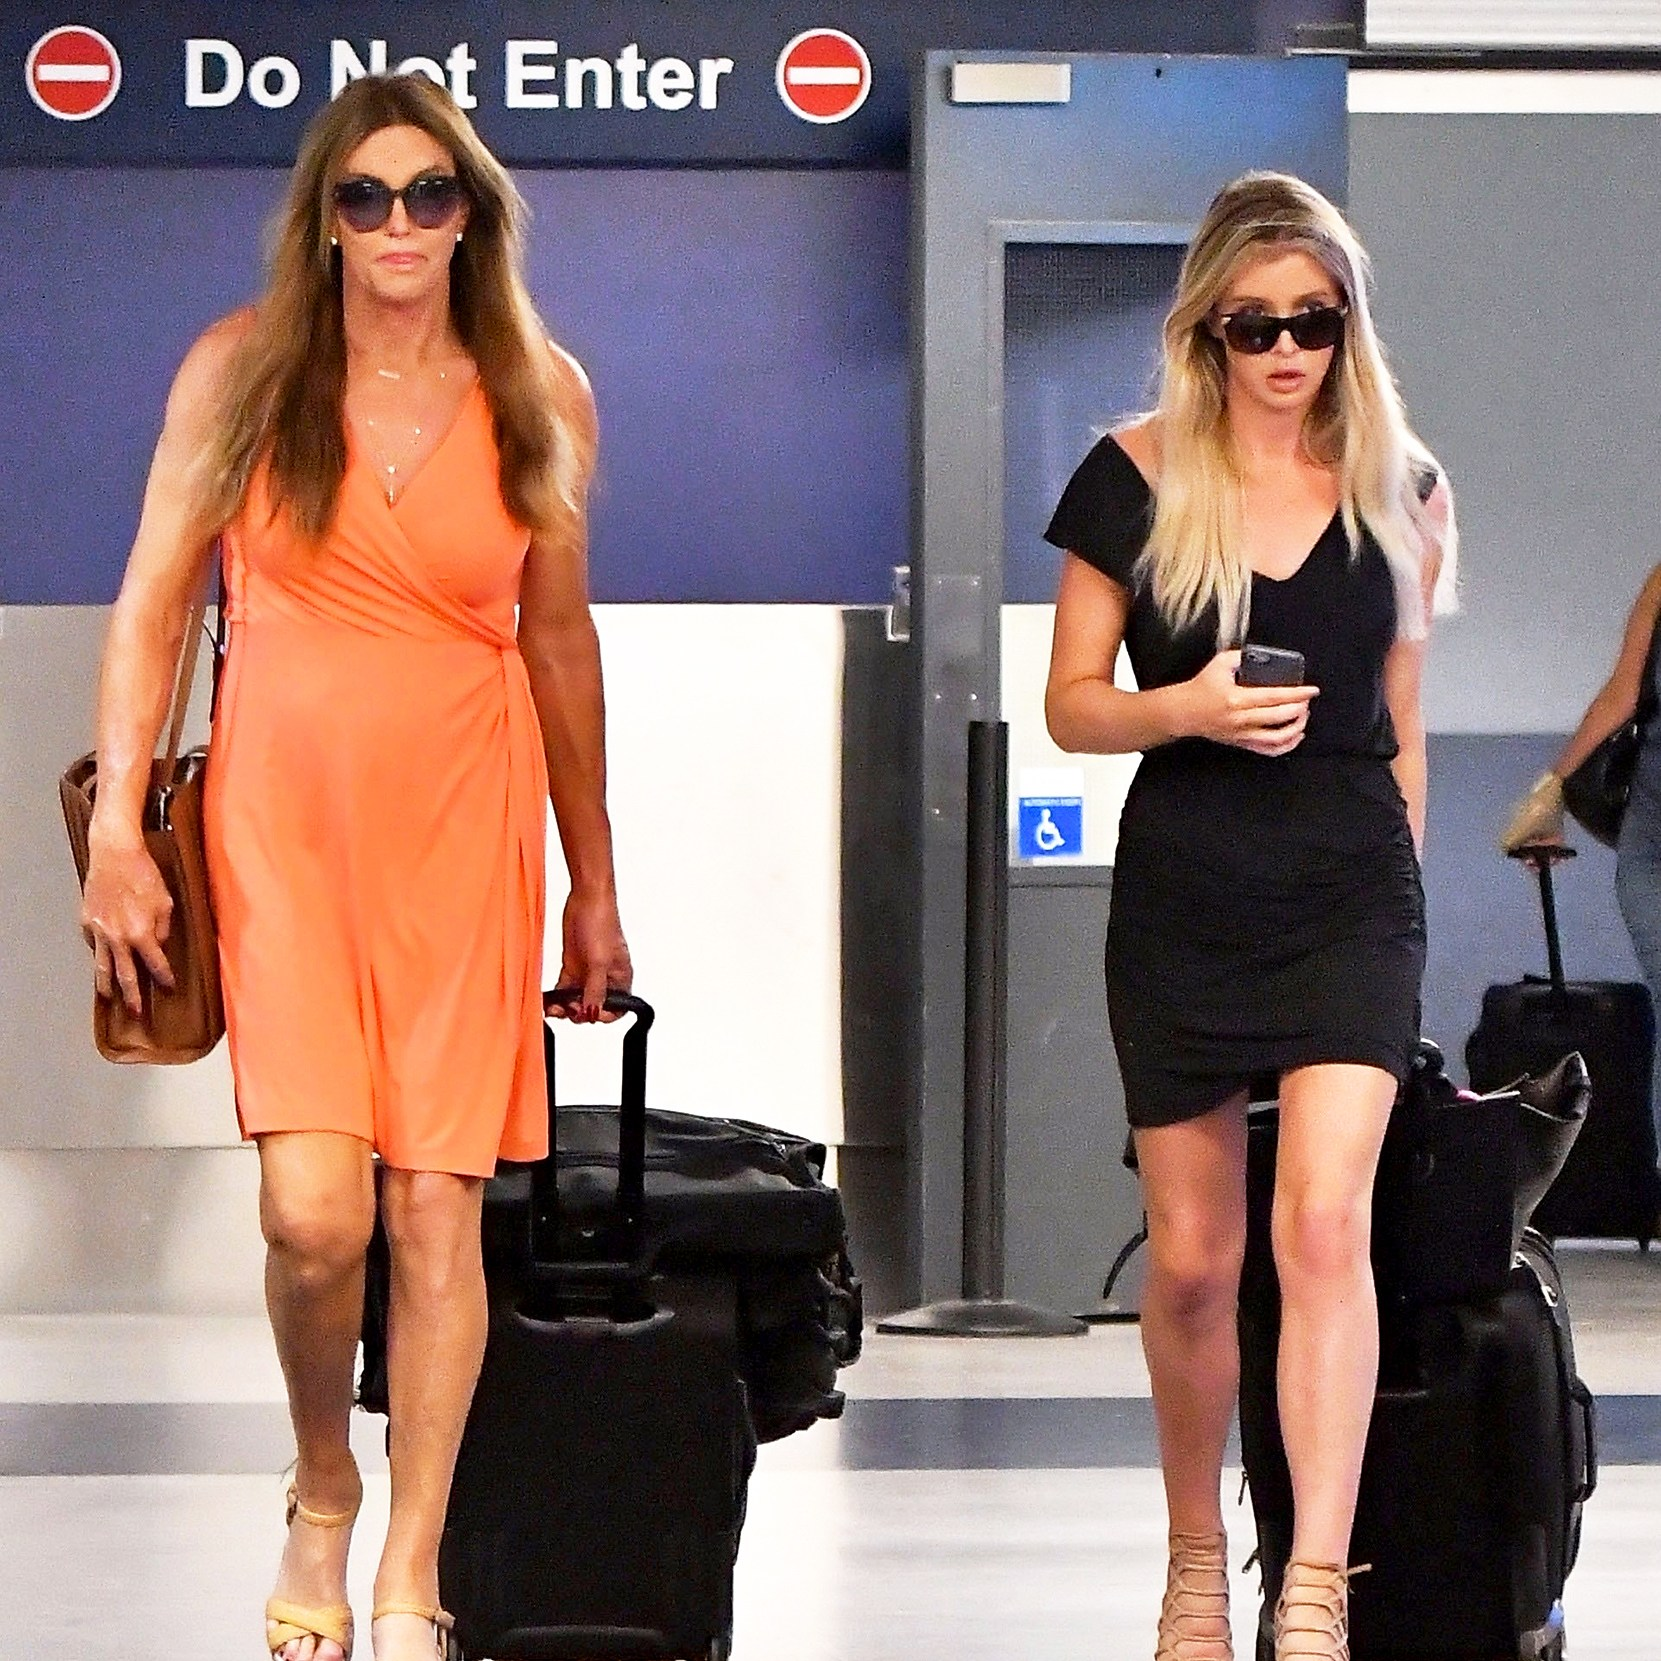 Caitlyn Jenner and Sophia Hutchins seen arriving on a flight at LAX airport in Los Angeles, California.